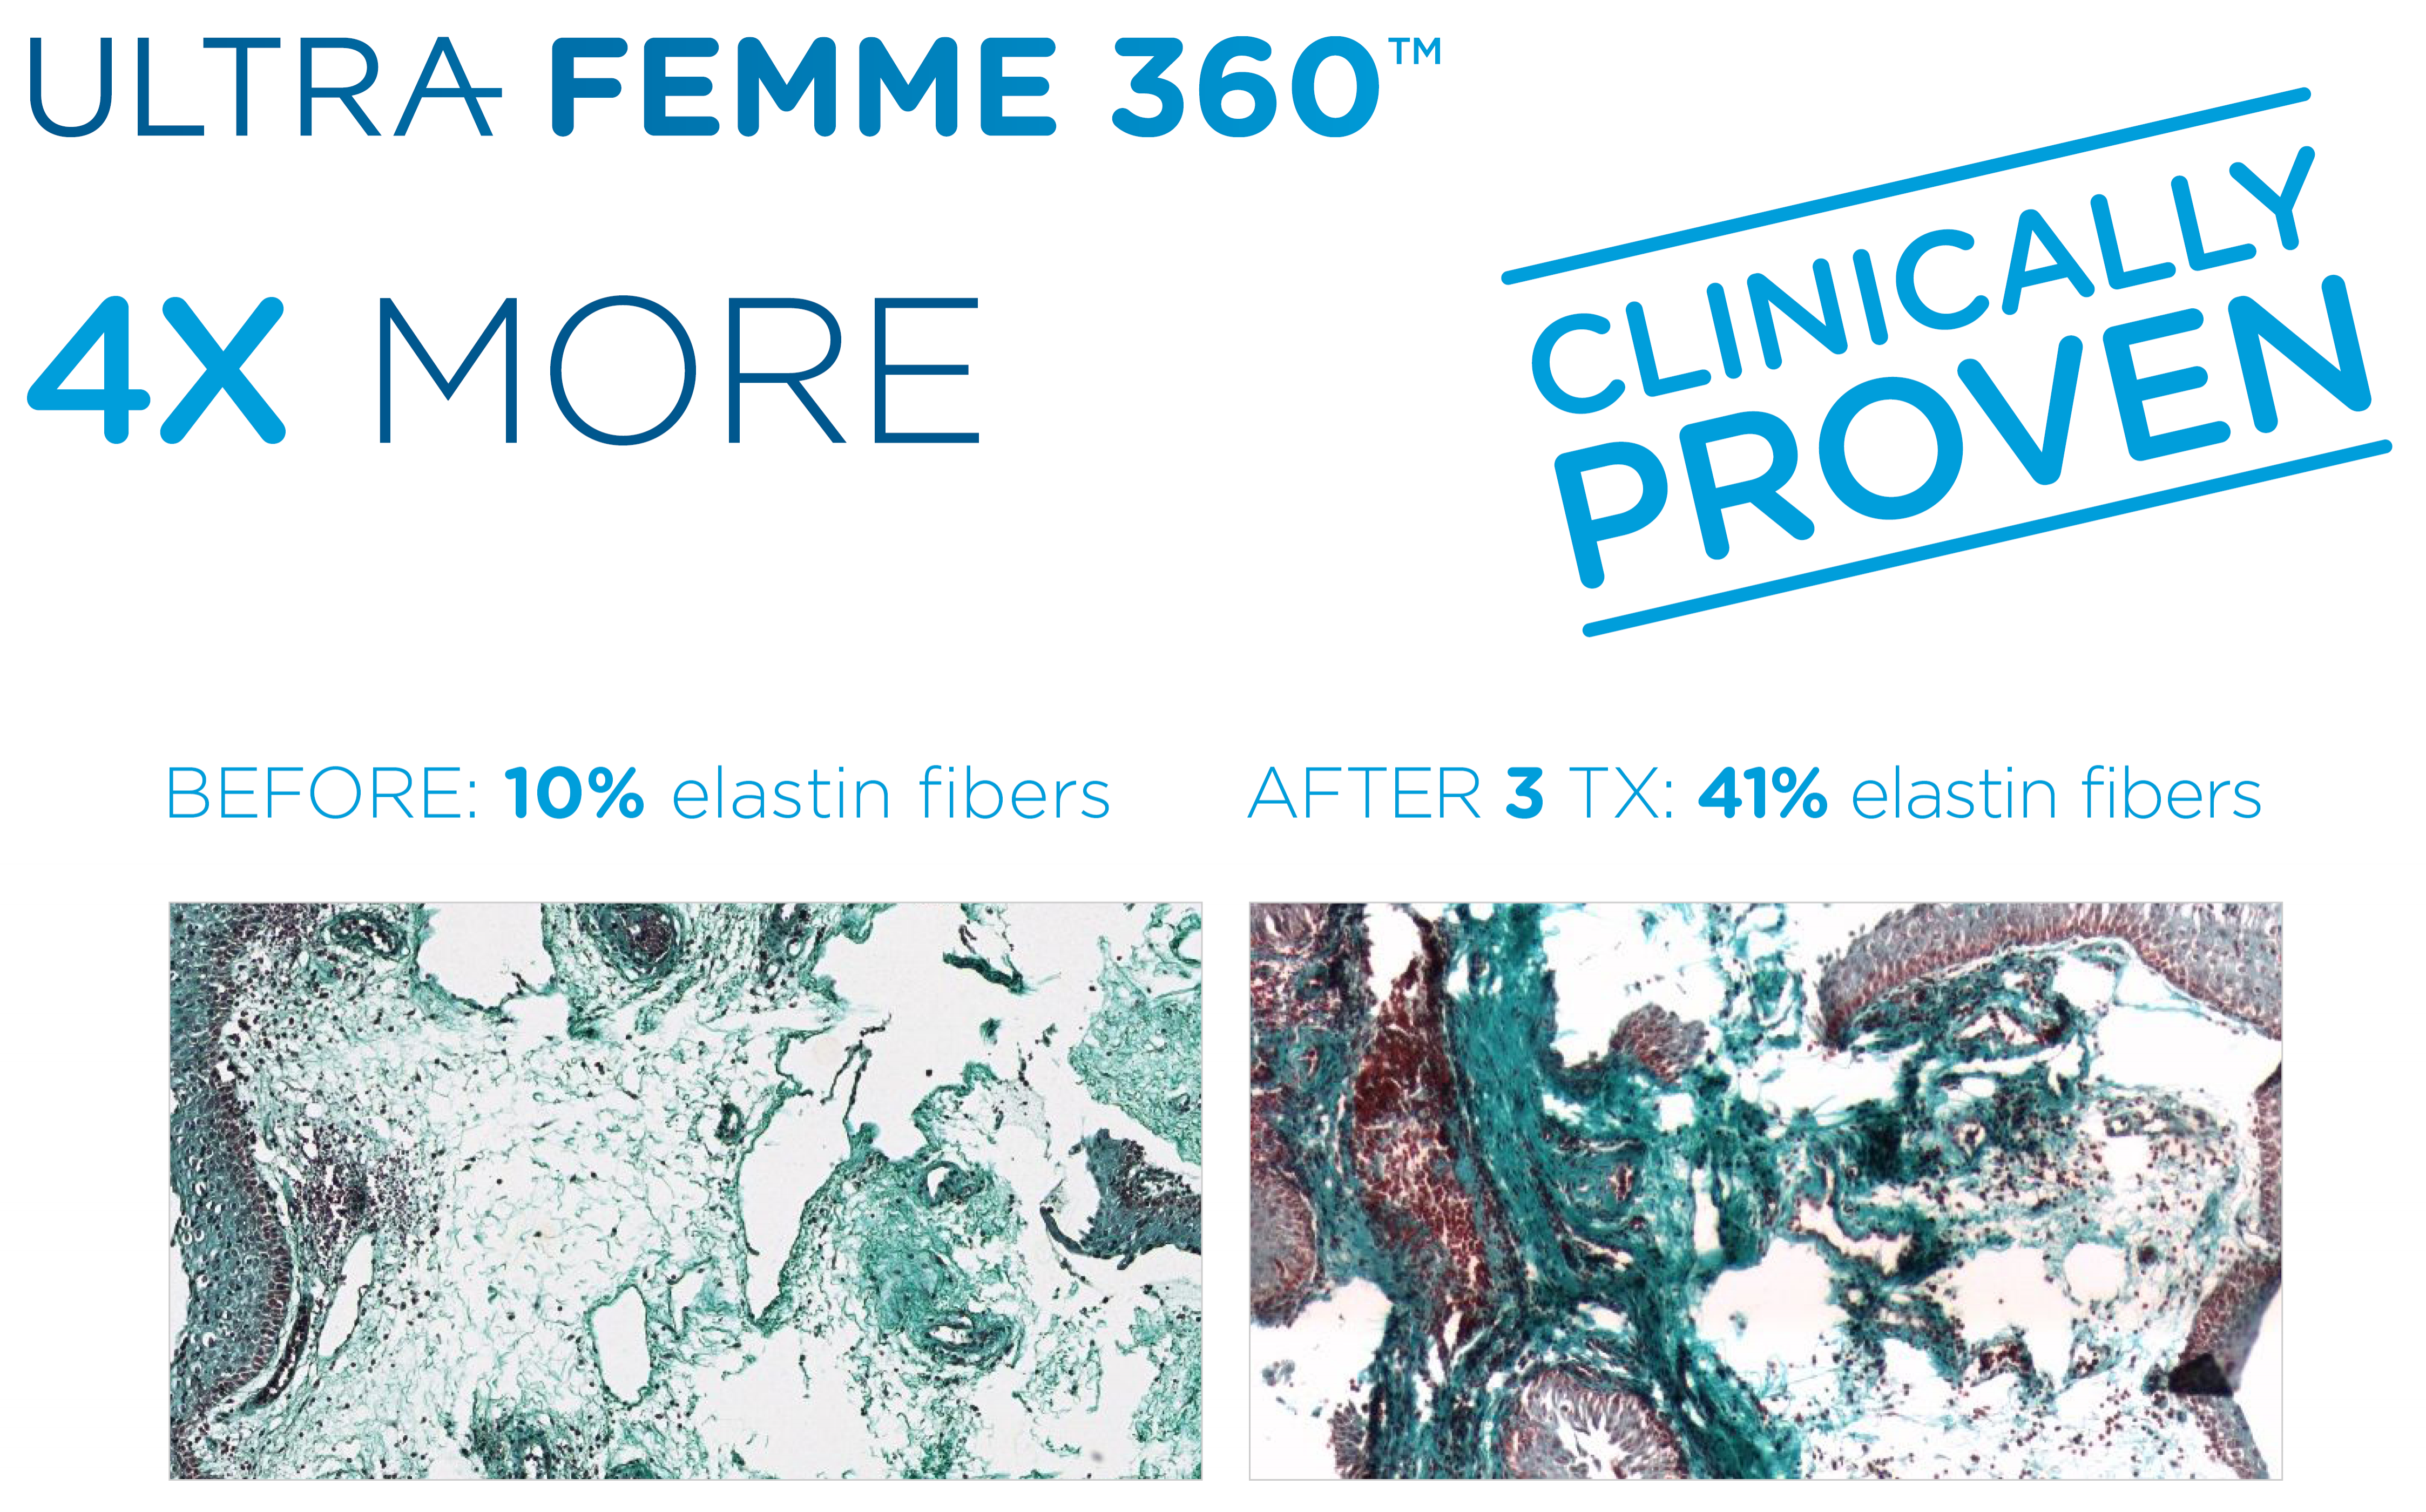 Ultra Femme 360 Clinically Proven